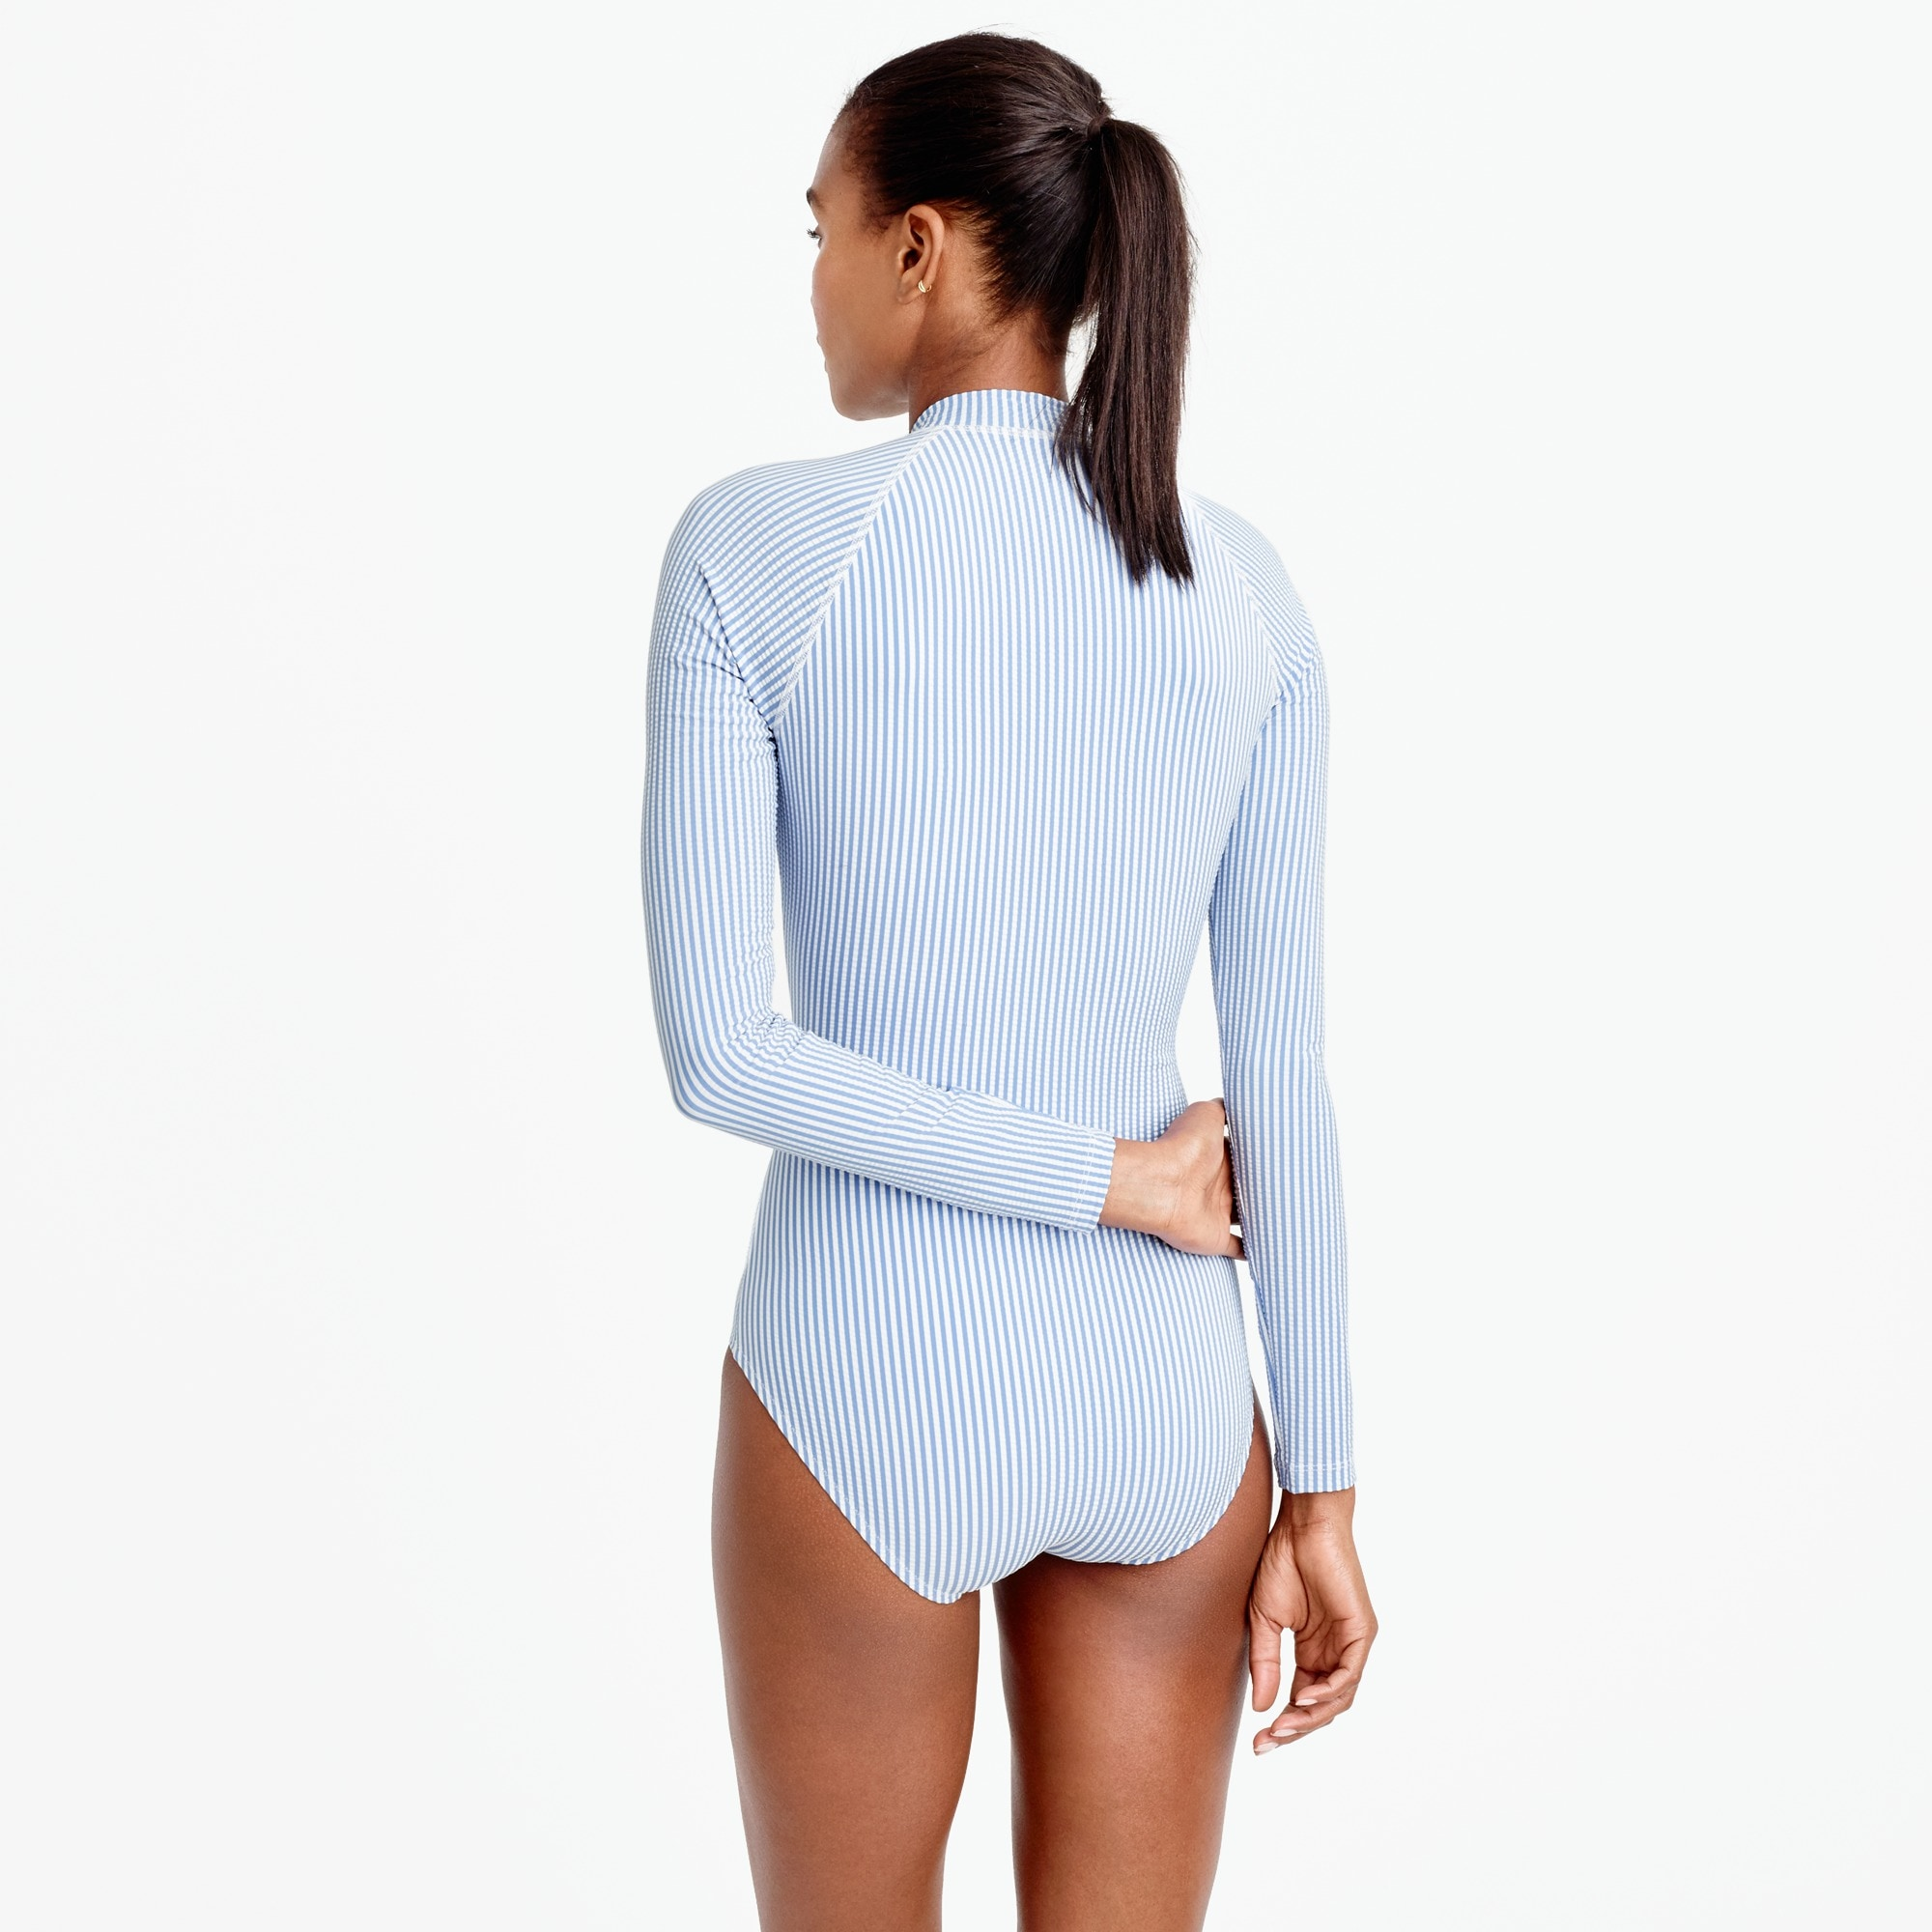 Image 2 for Long-sleeve one-piece swimsuit in seersucker